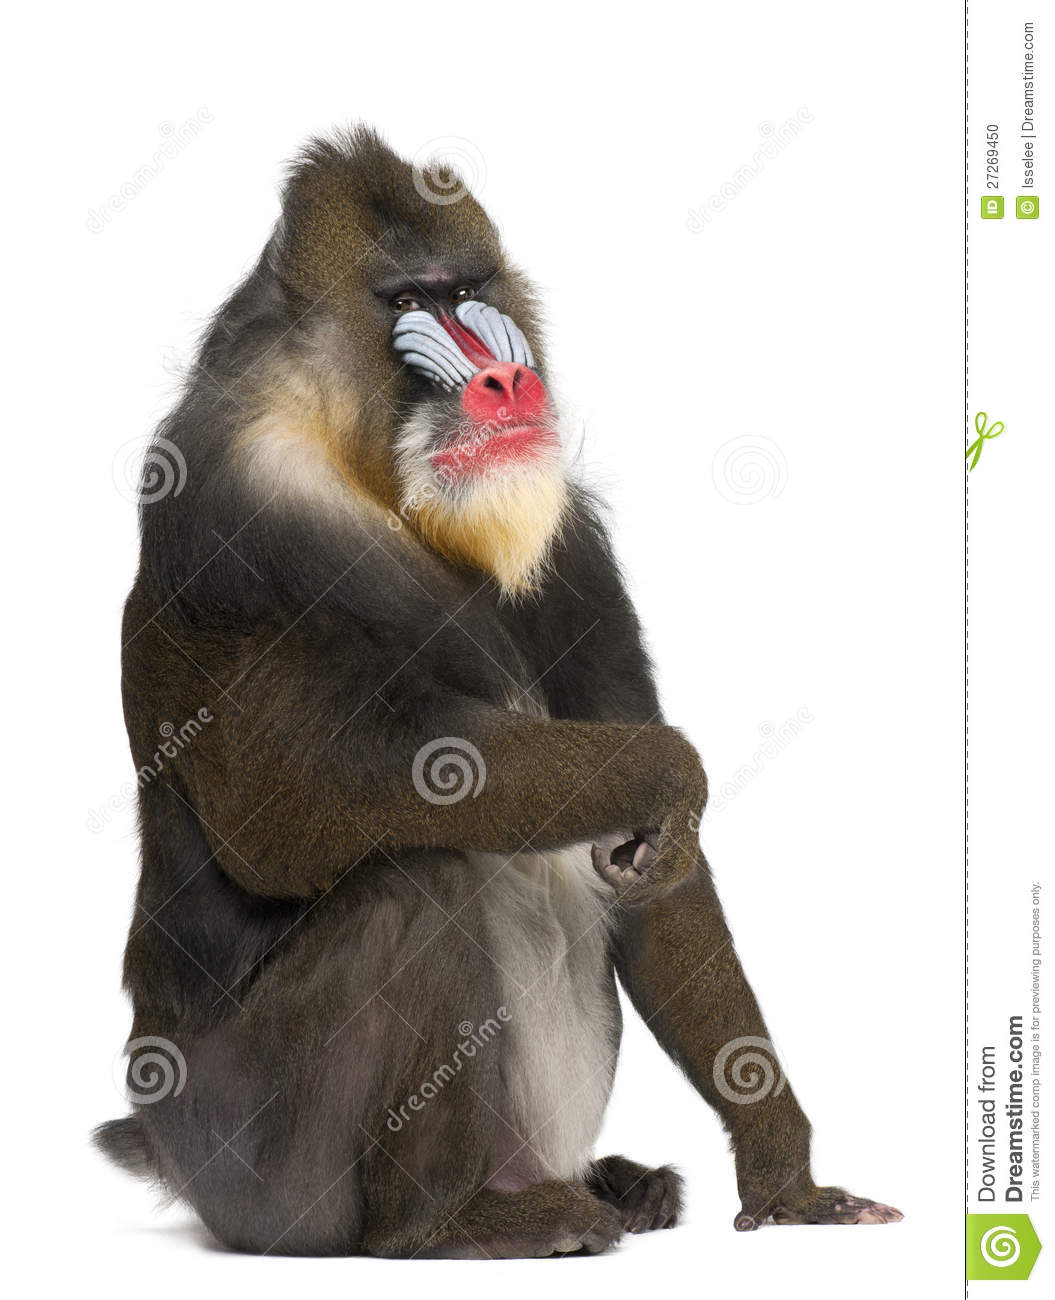 Portrait Of Mandrill, Mandrillus Sphinx, Primate Stock Photo.